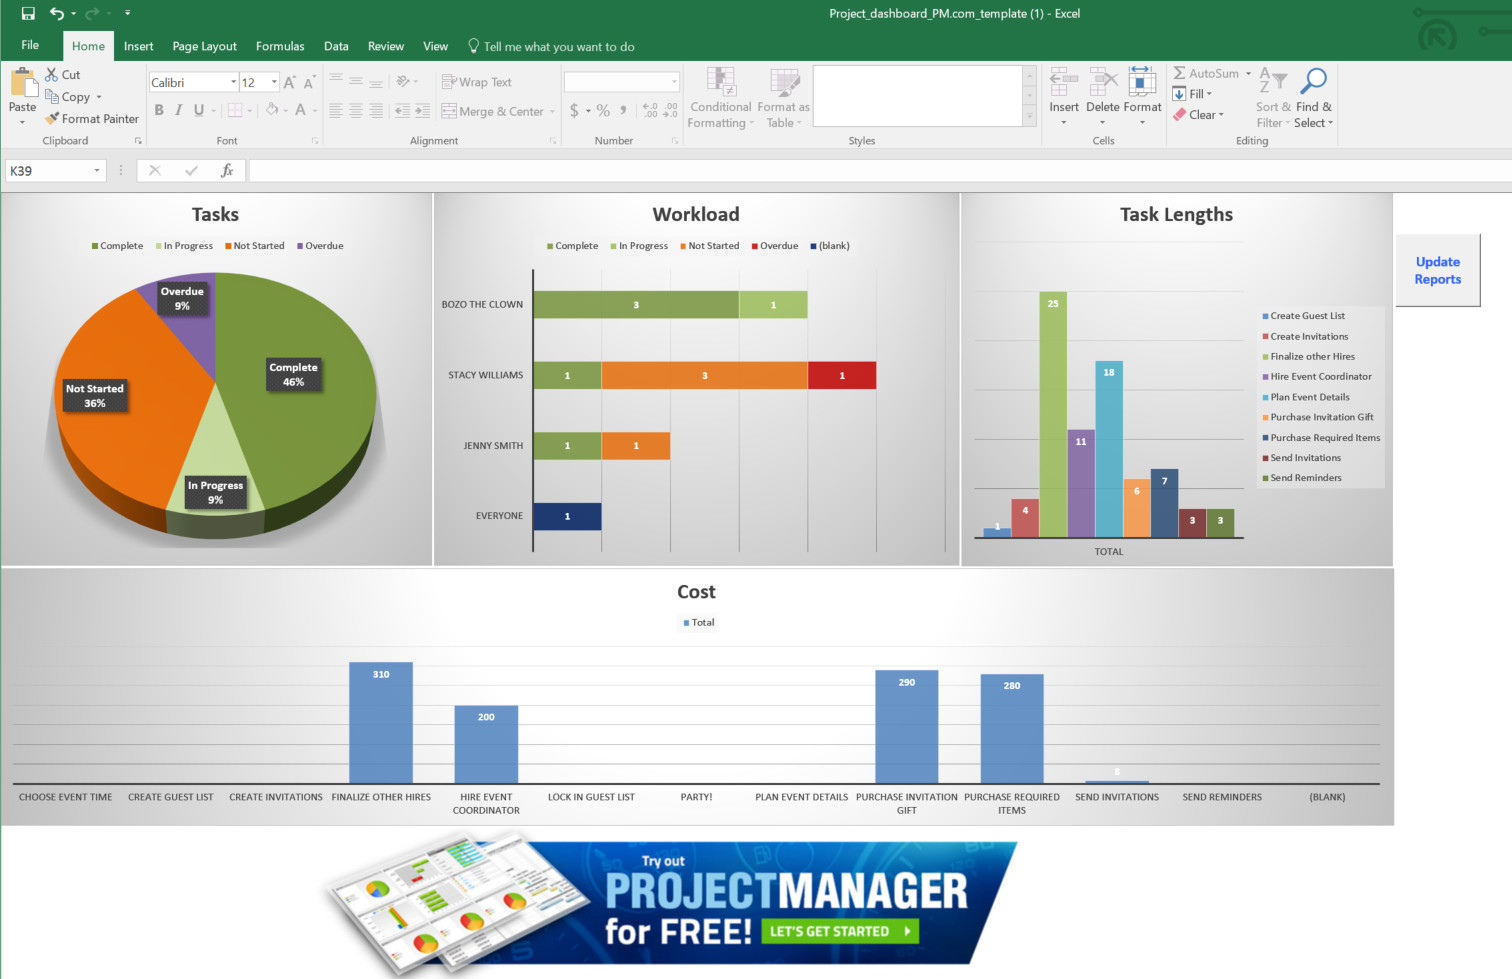 Guide To Excel Project Management - Projectmanager Inside Project Management Spreadsheet Template Free